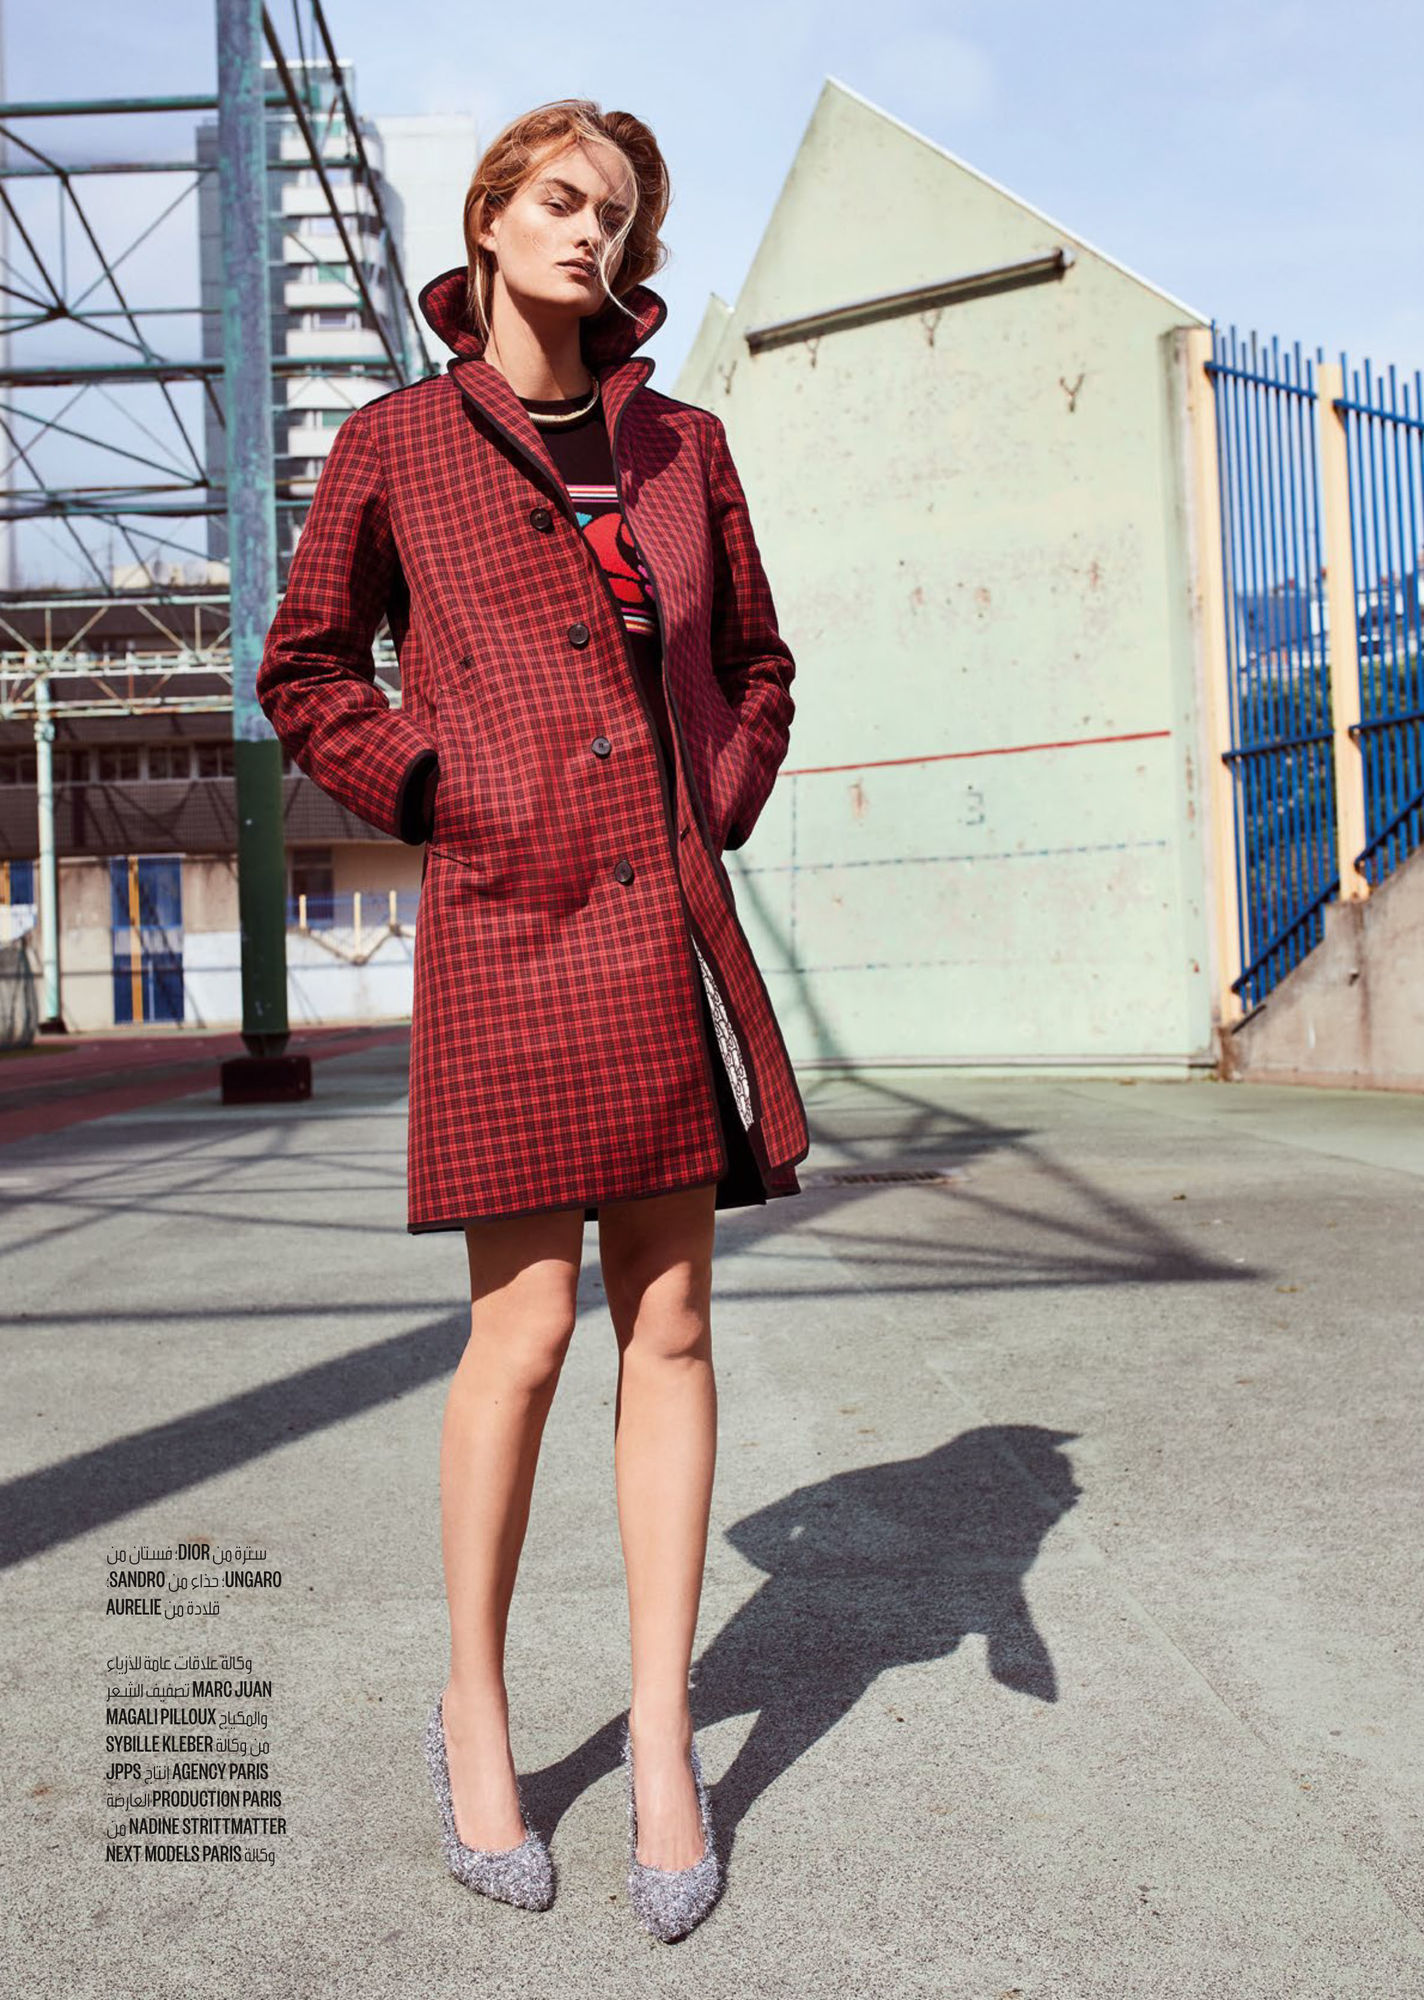 JPPS CREATIVE PRODUCTIONS for VOGUE ARABIA